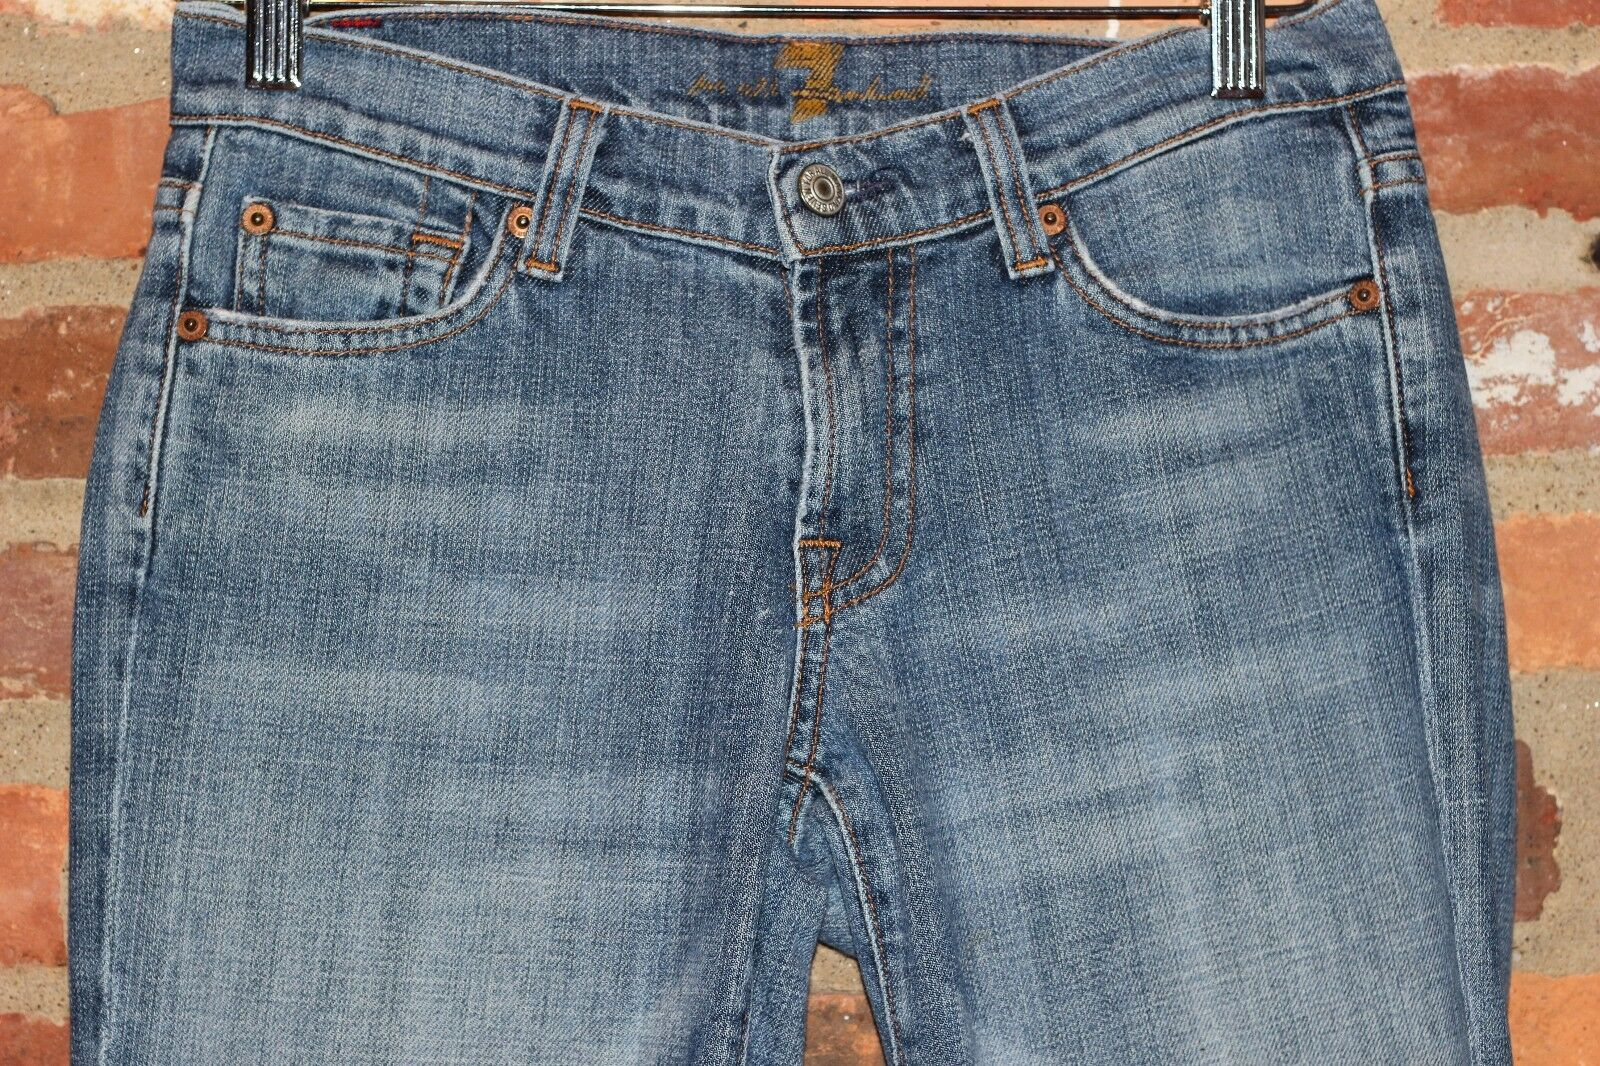 7 for Mankind Jeans by Jerome Dahan Size 26 Size 2 Fits Tall and Thin